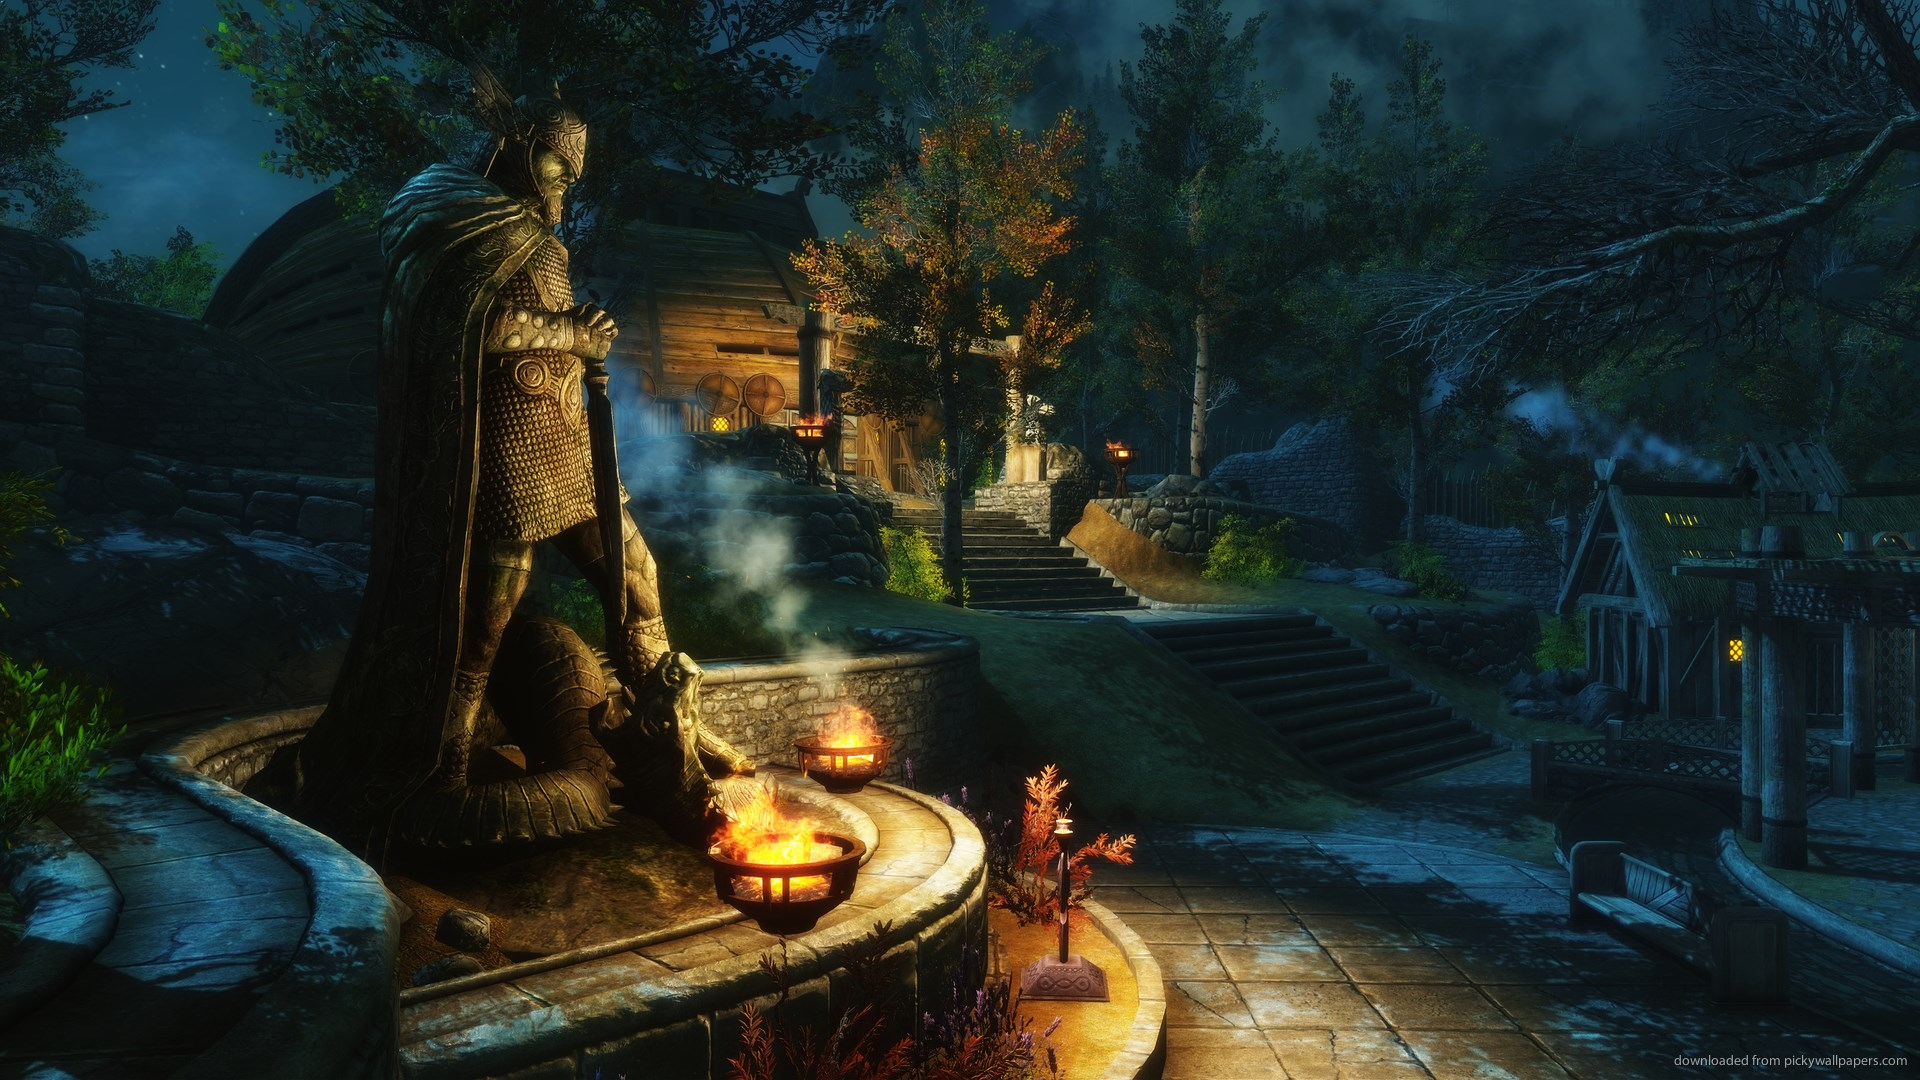 Alone Hd Wallpapers 1080p The Top 10 Best Skyrim Wallpapers Gamers Decide